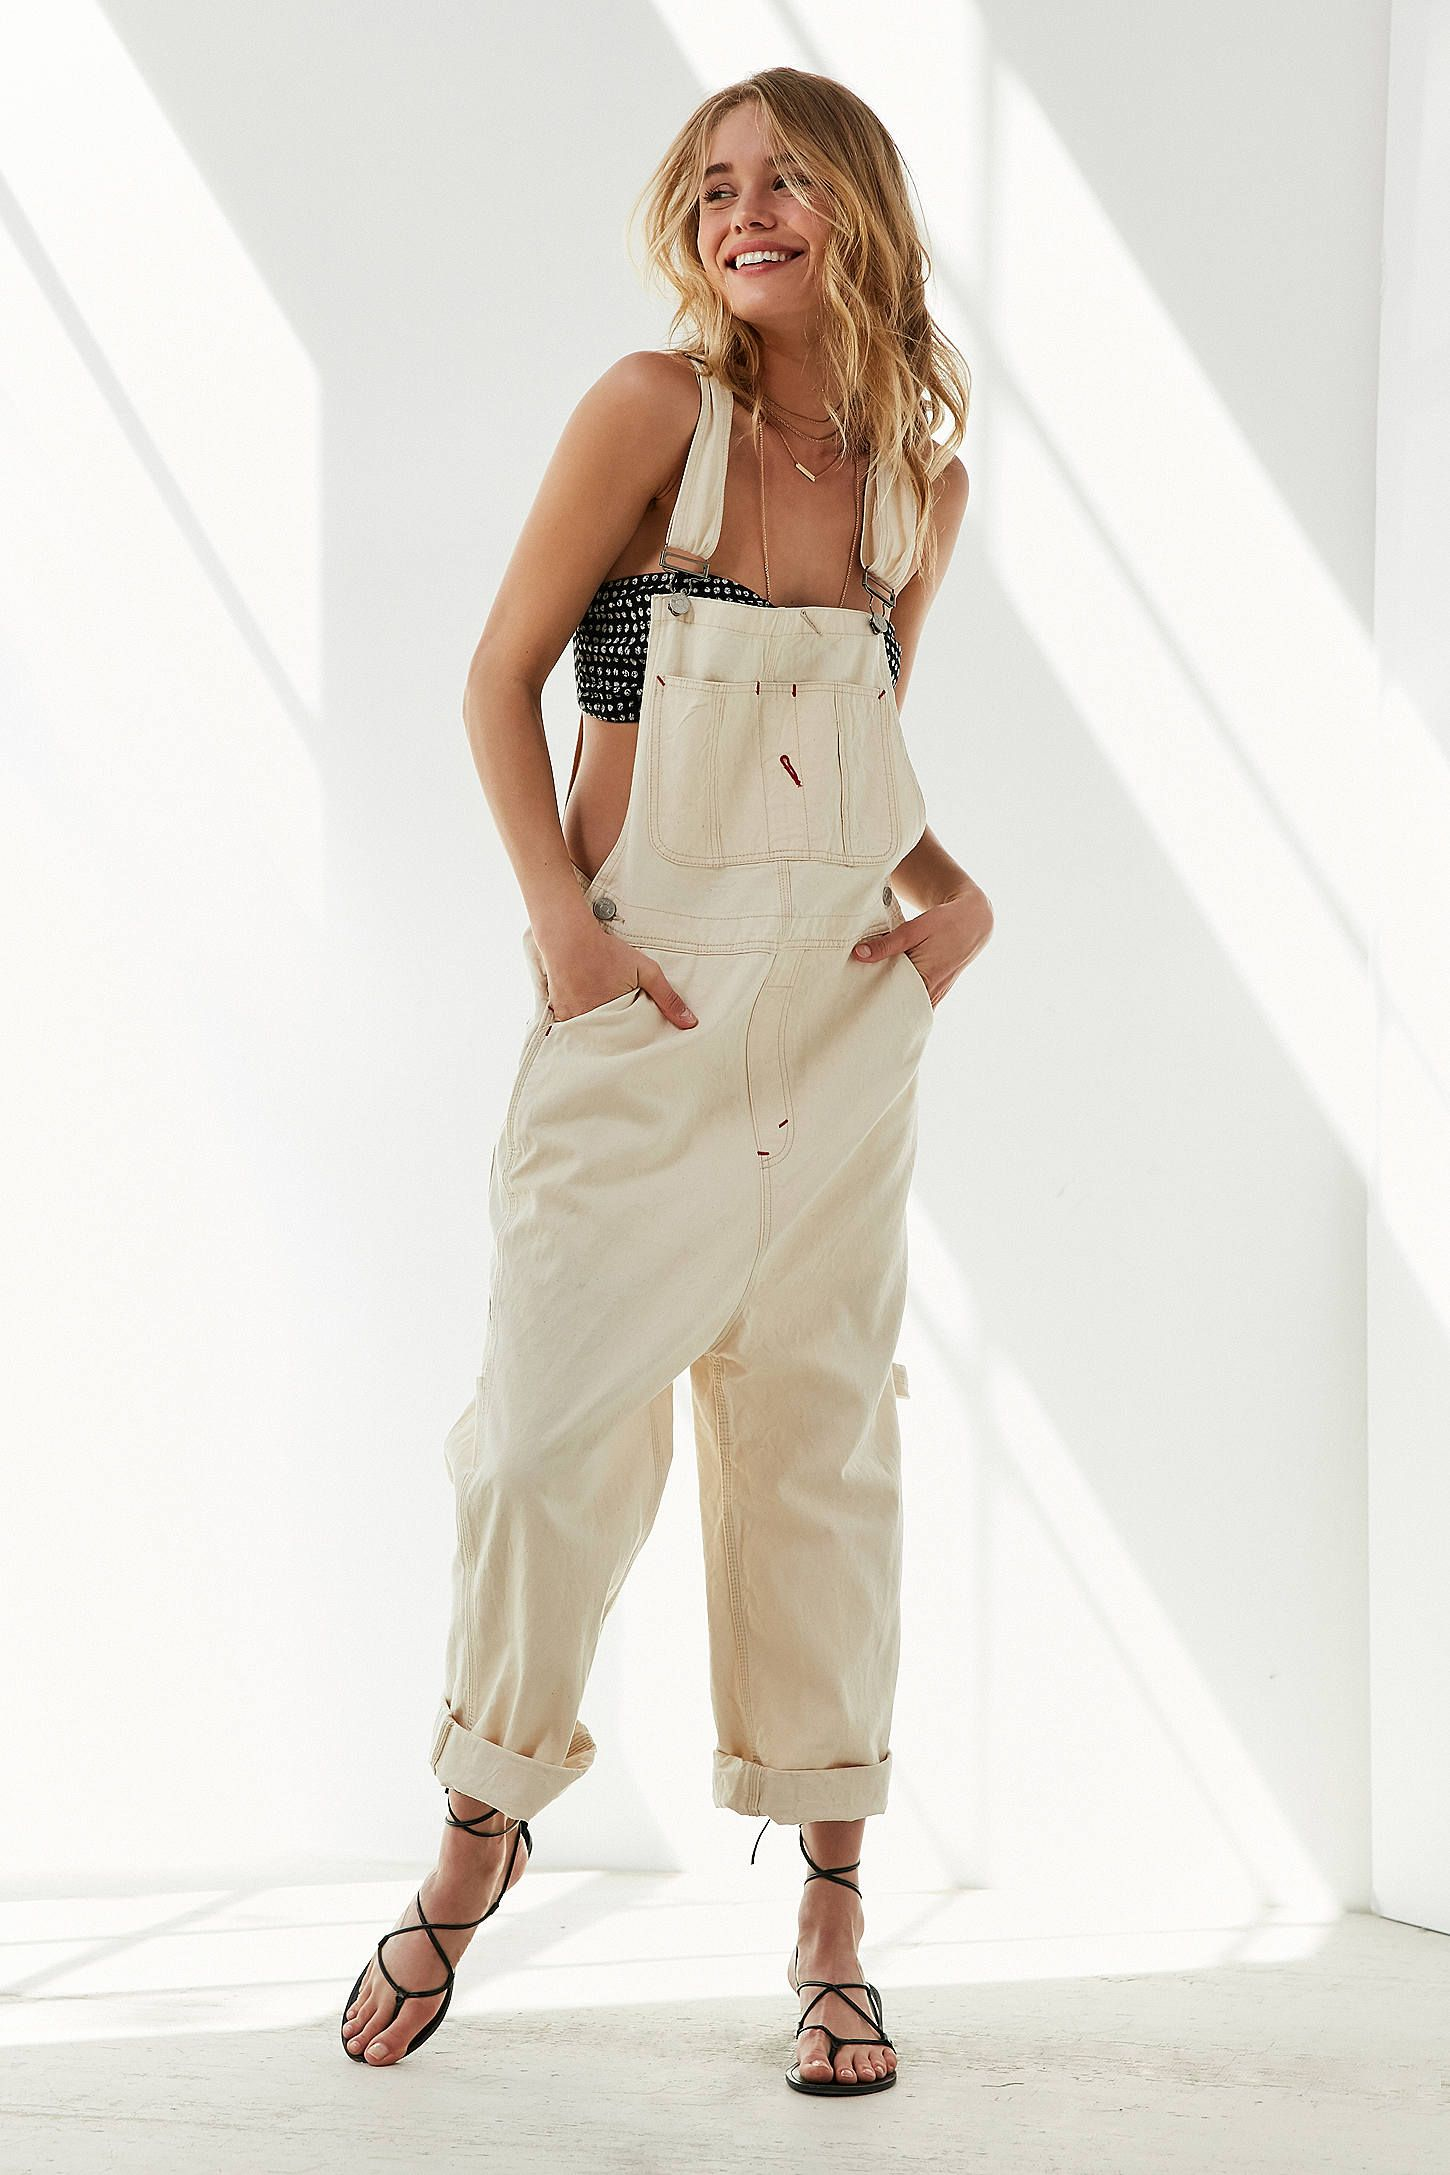 790c7d886d Shop BDG Oversized Stitched Overall at Urban Outfitters today. We carry all  the latest styles